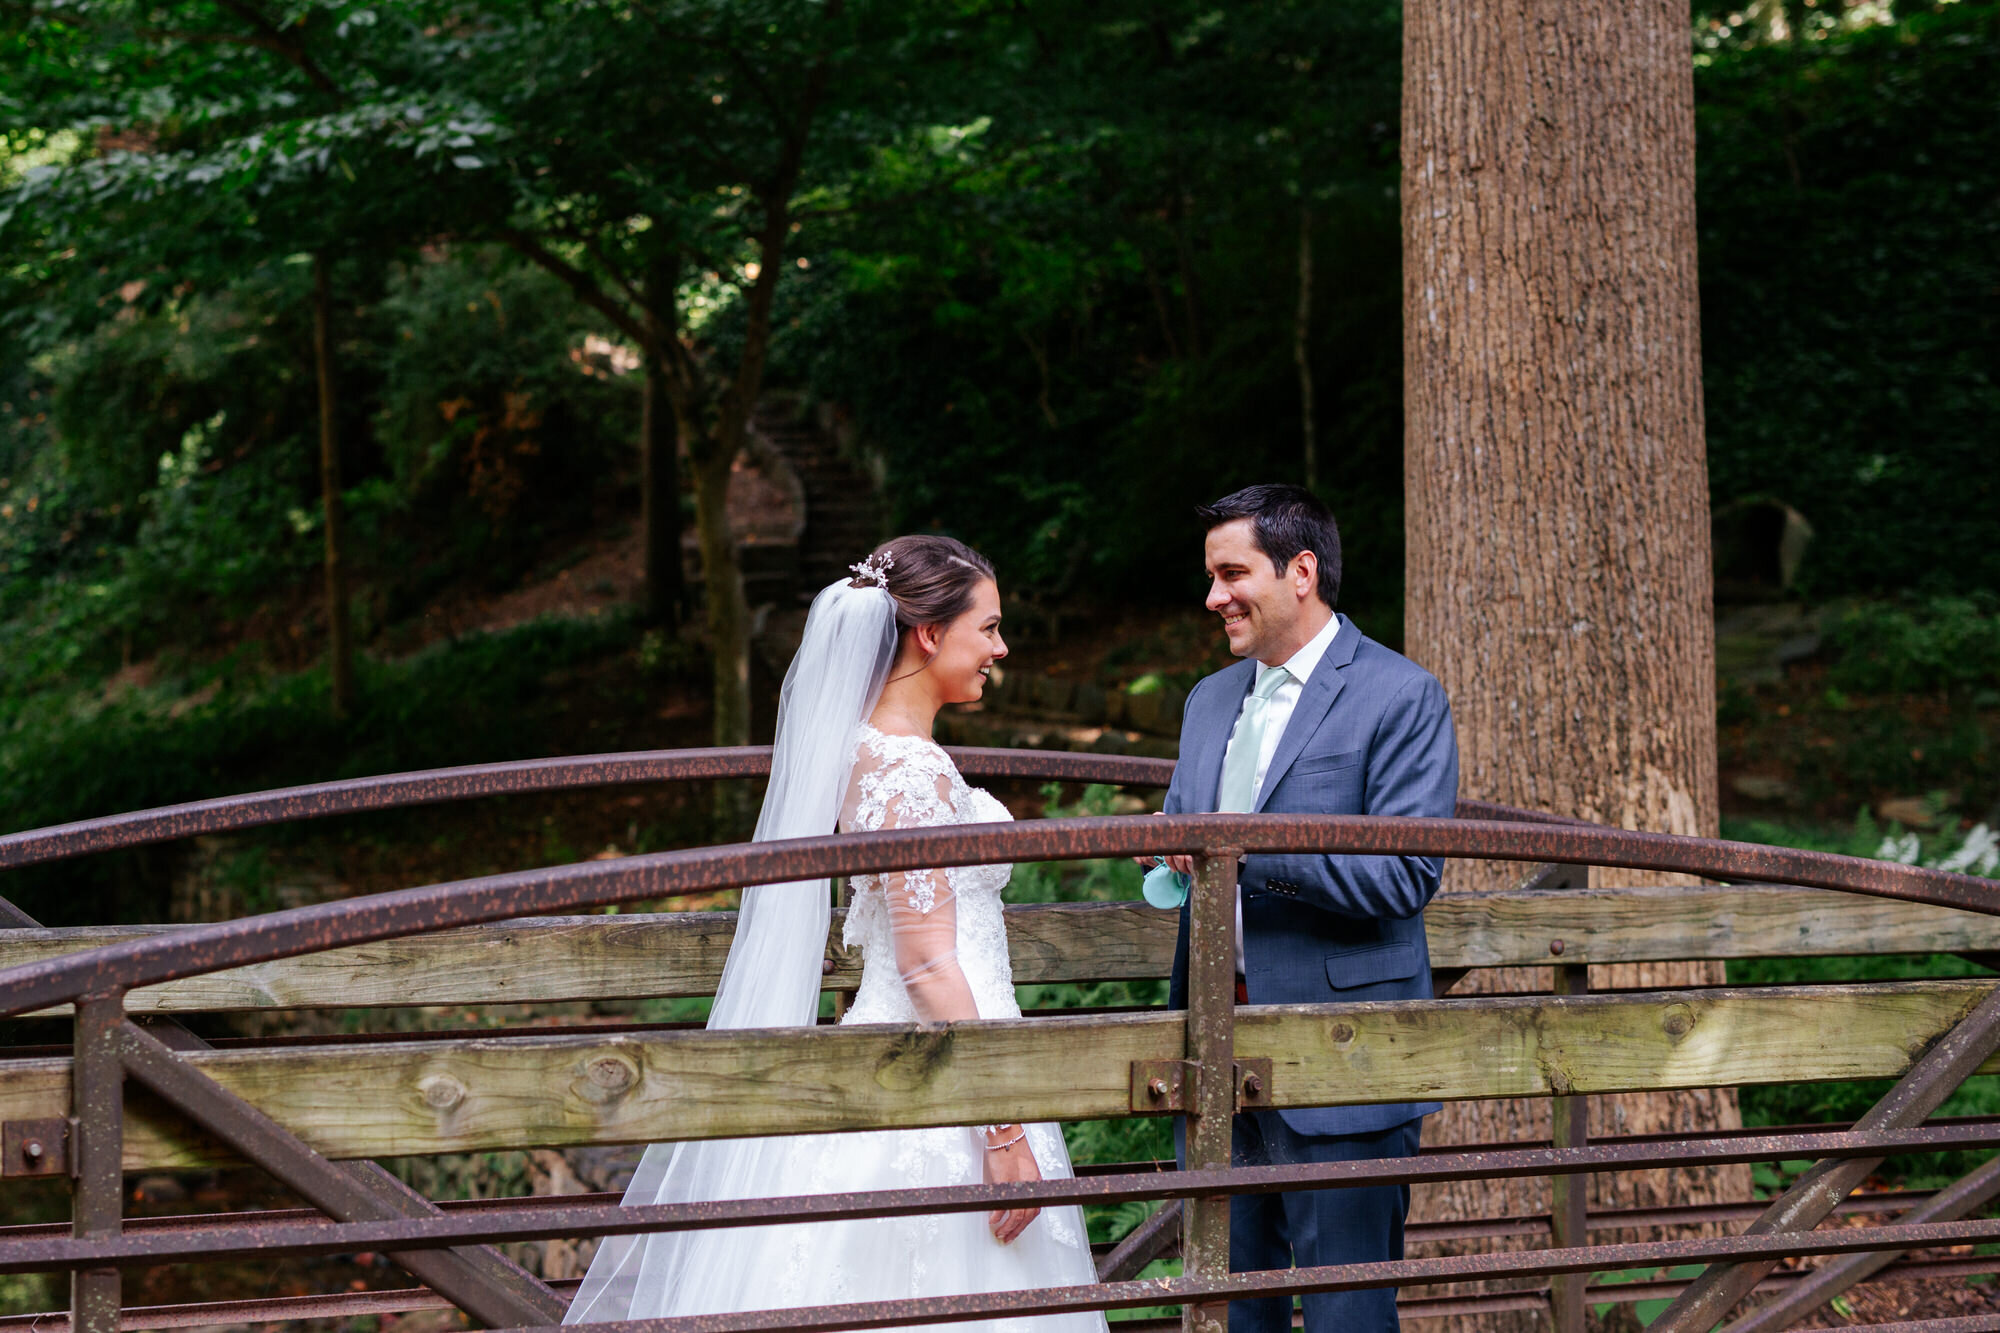 twigs-tempietto-wedding-greenville-downtown-284.JPG